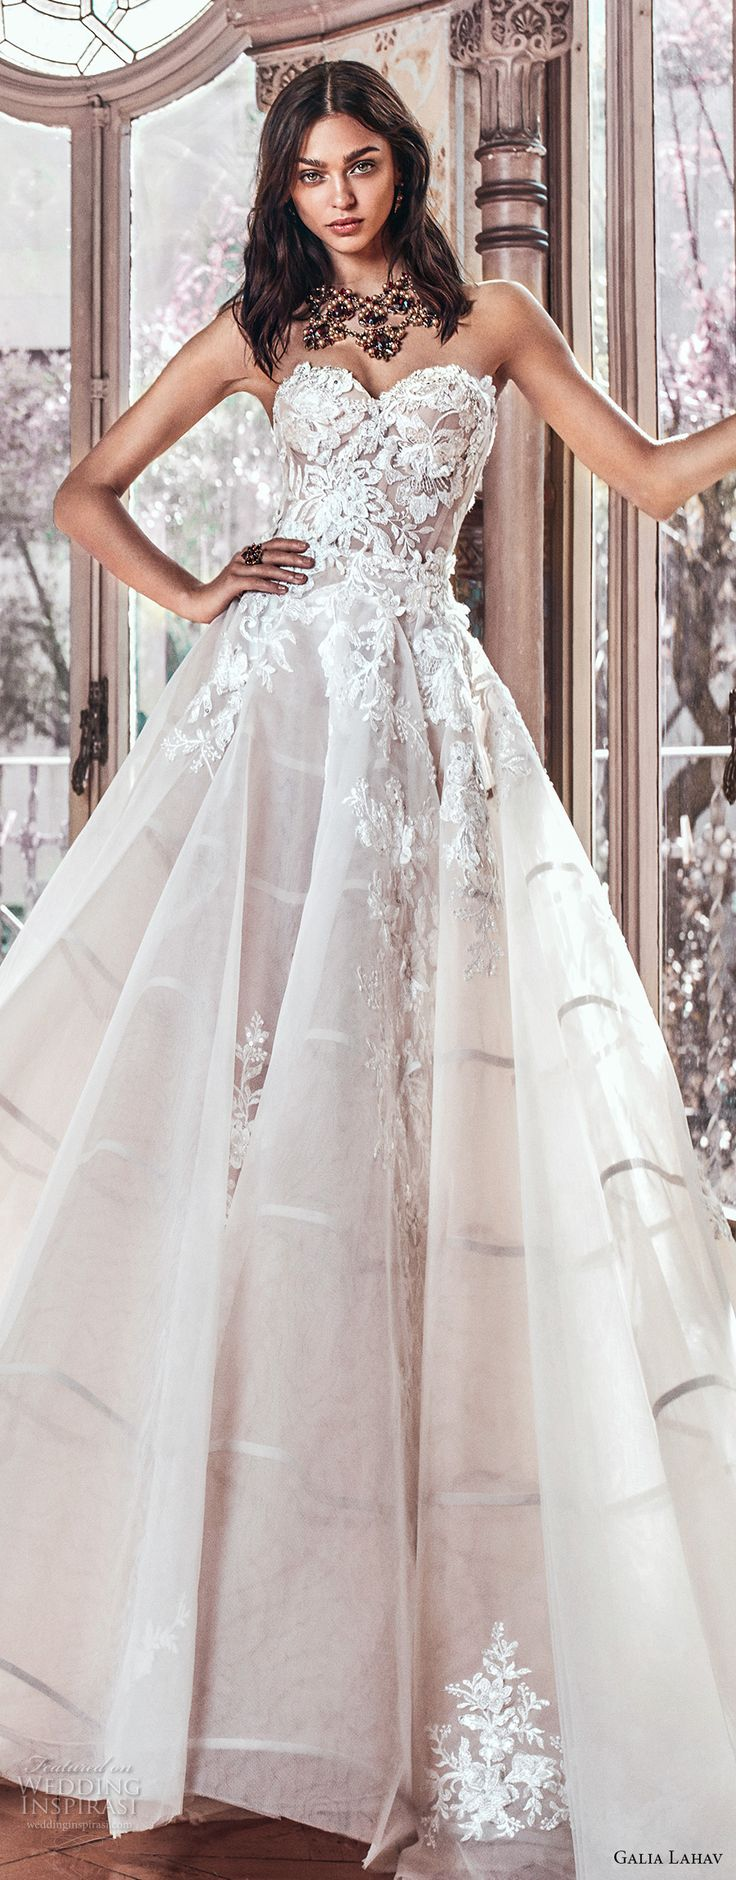 galia lahav spring 2018 bridal strapless sweetheart neckline heavily embellished bodice romantic princess blush color ball gown a  line wedding dress chapel train (alma) zv -- Galia Lahav Spring 2018 Wedding Dresses